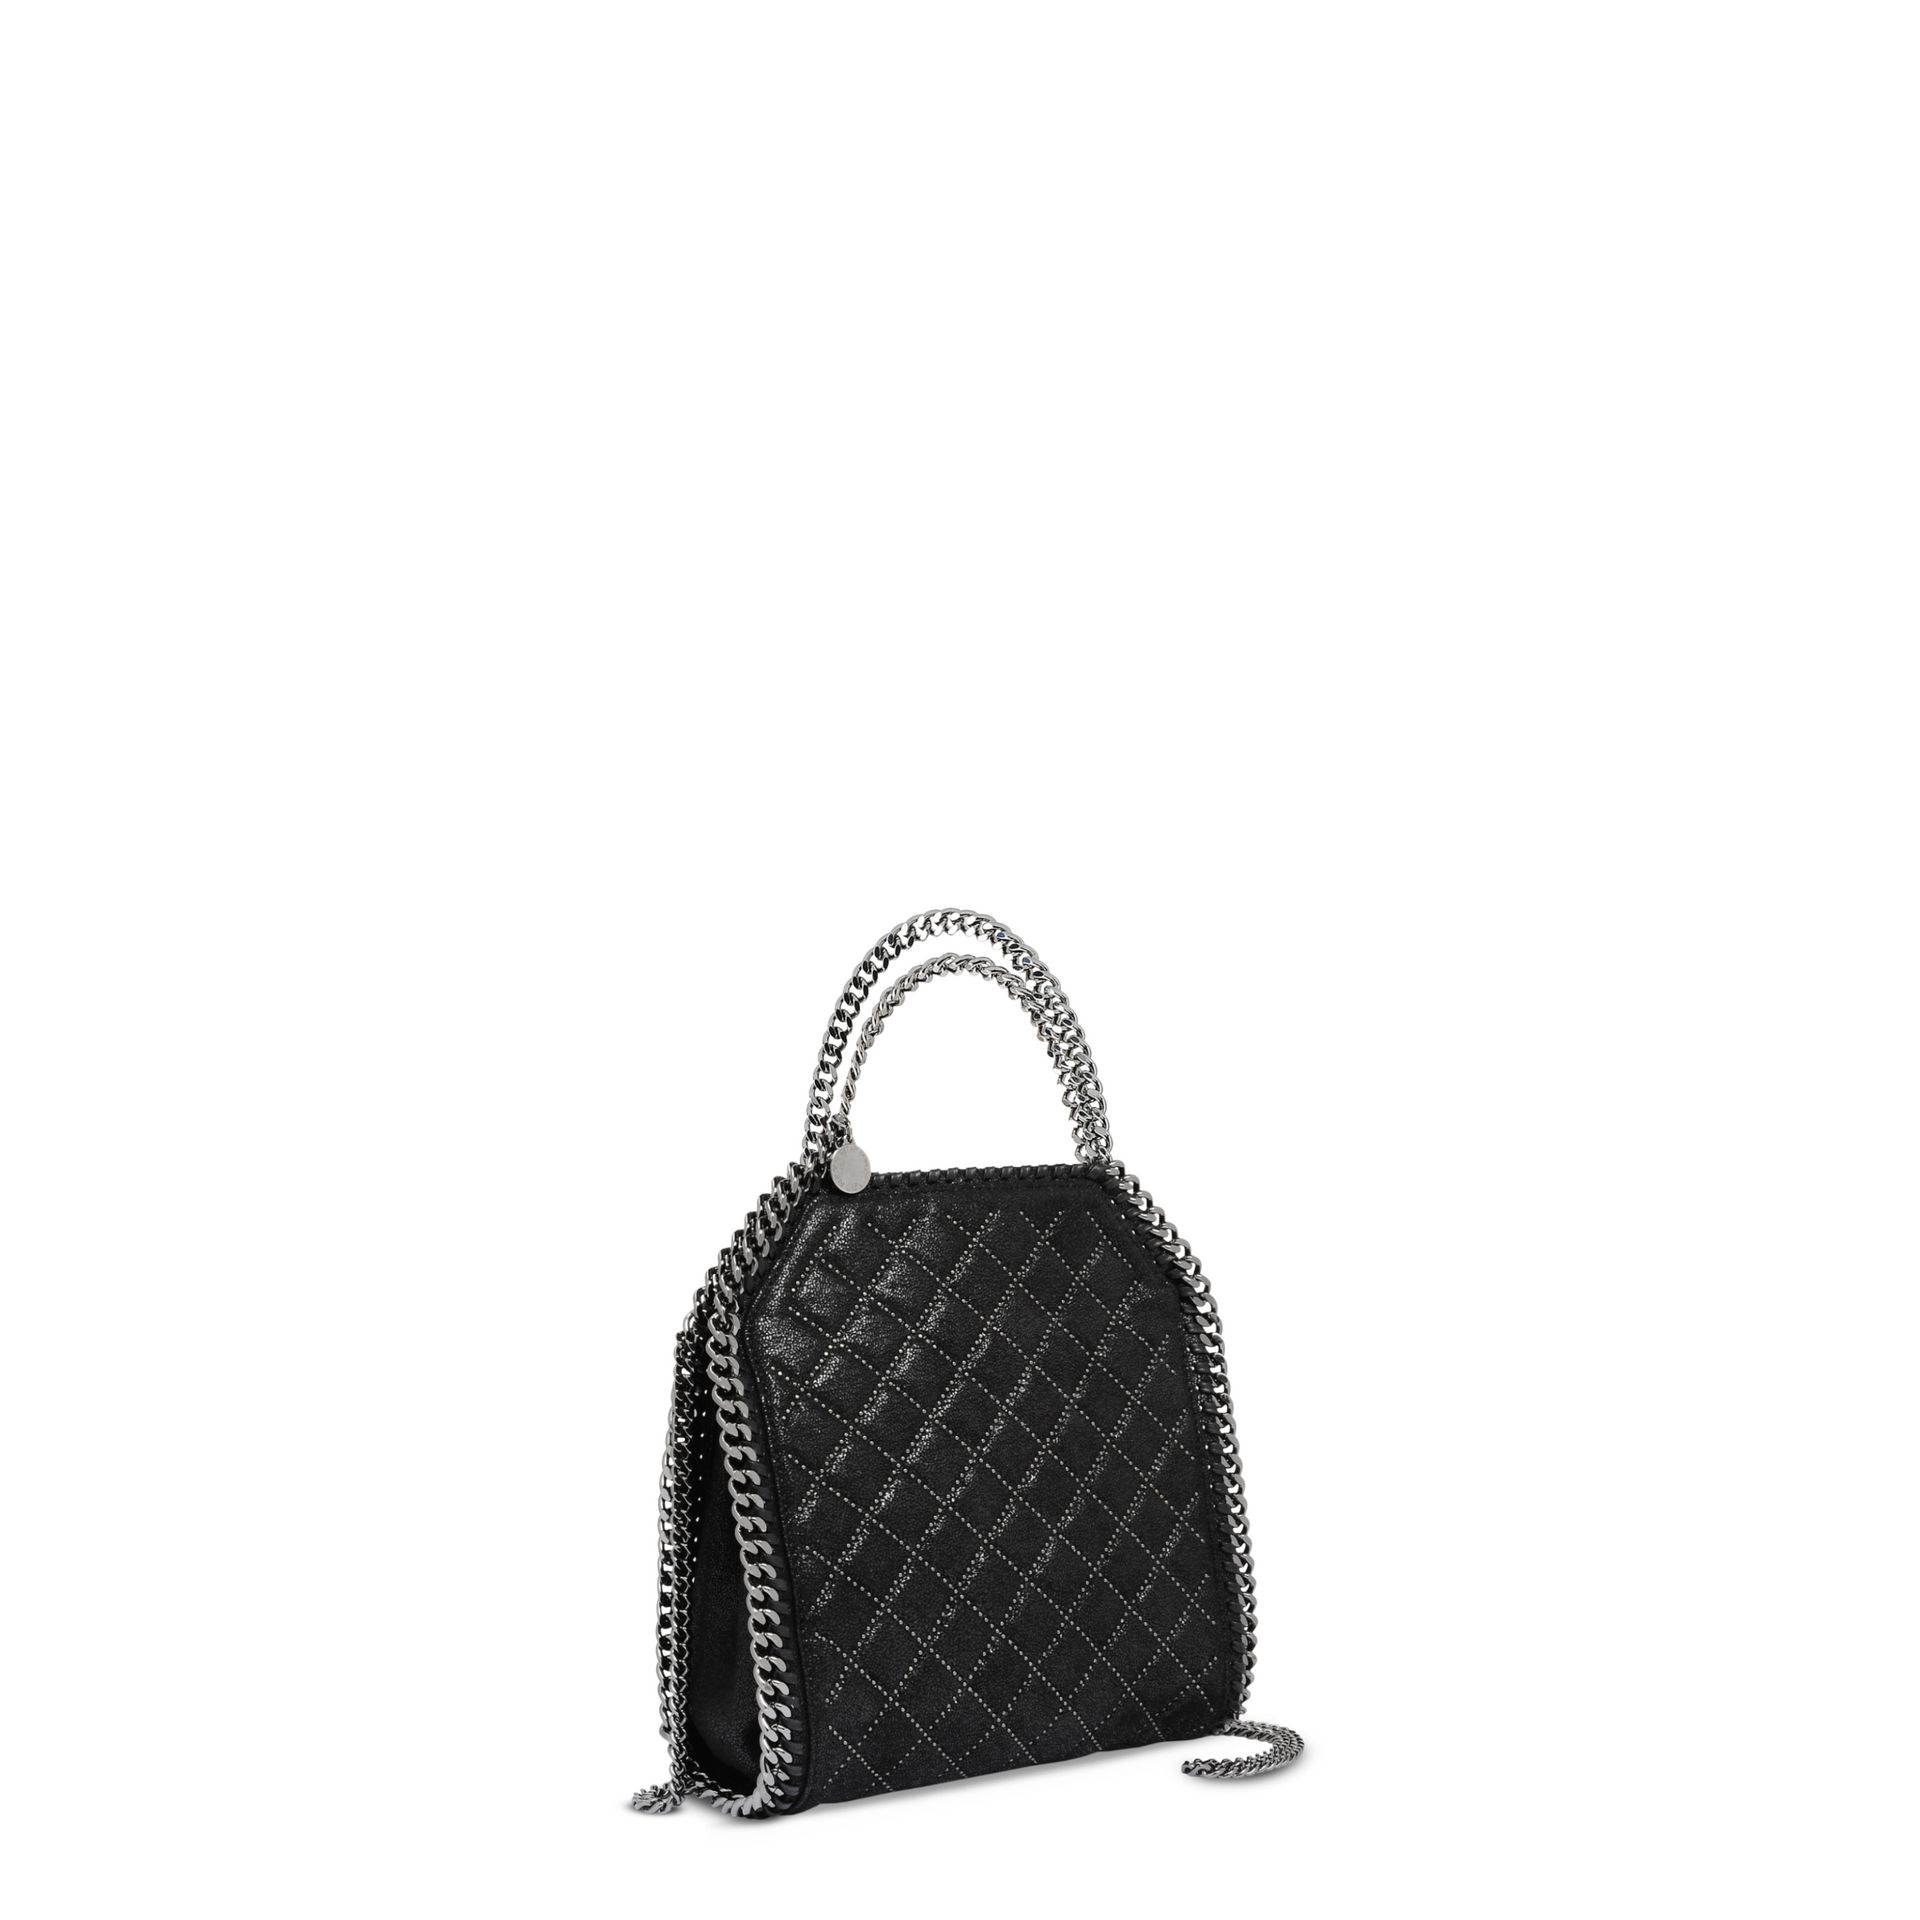 8eab1e17480 Black Quilted Studded Weekend Bag.Lyst Stella Mccartney Black ...